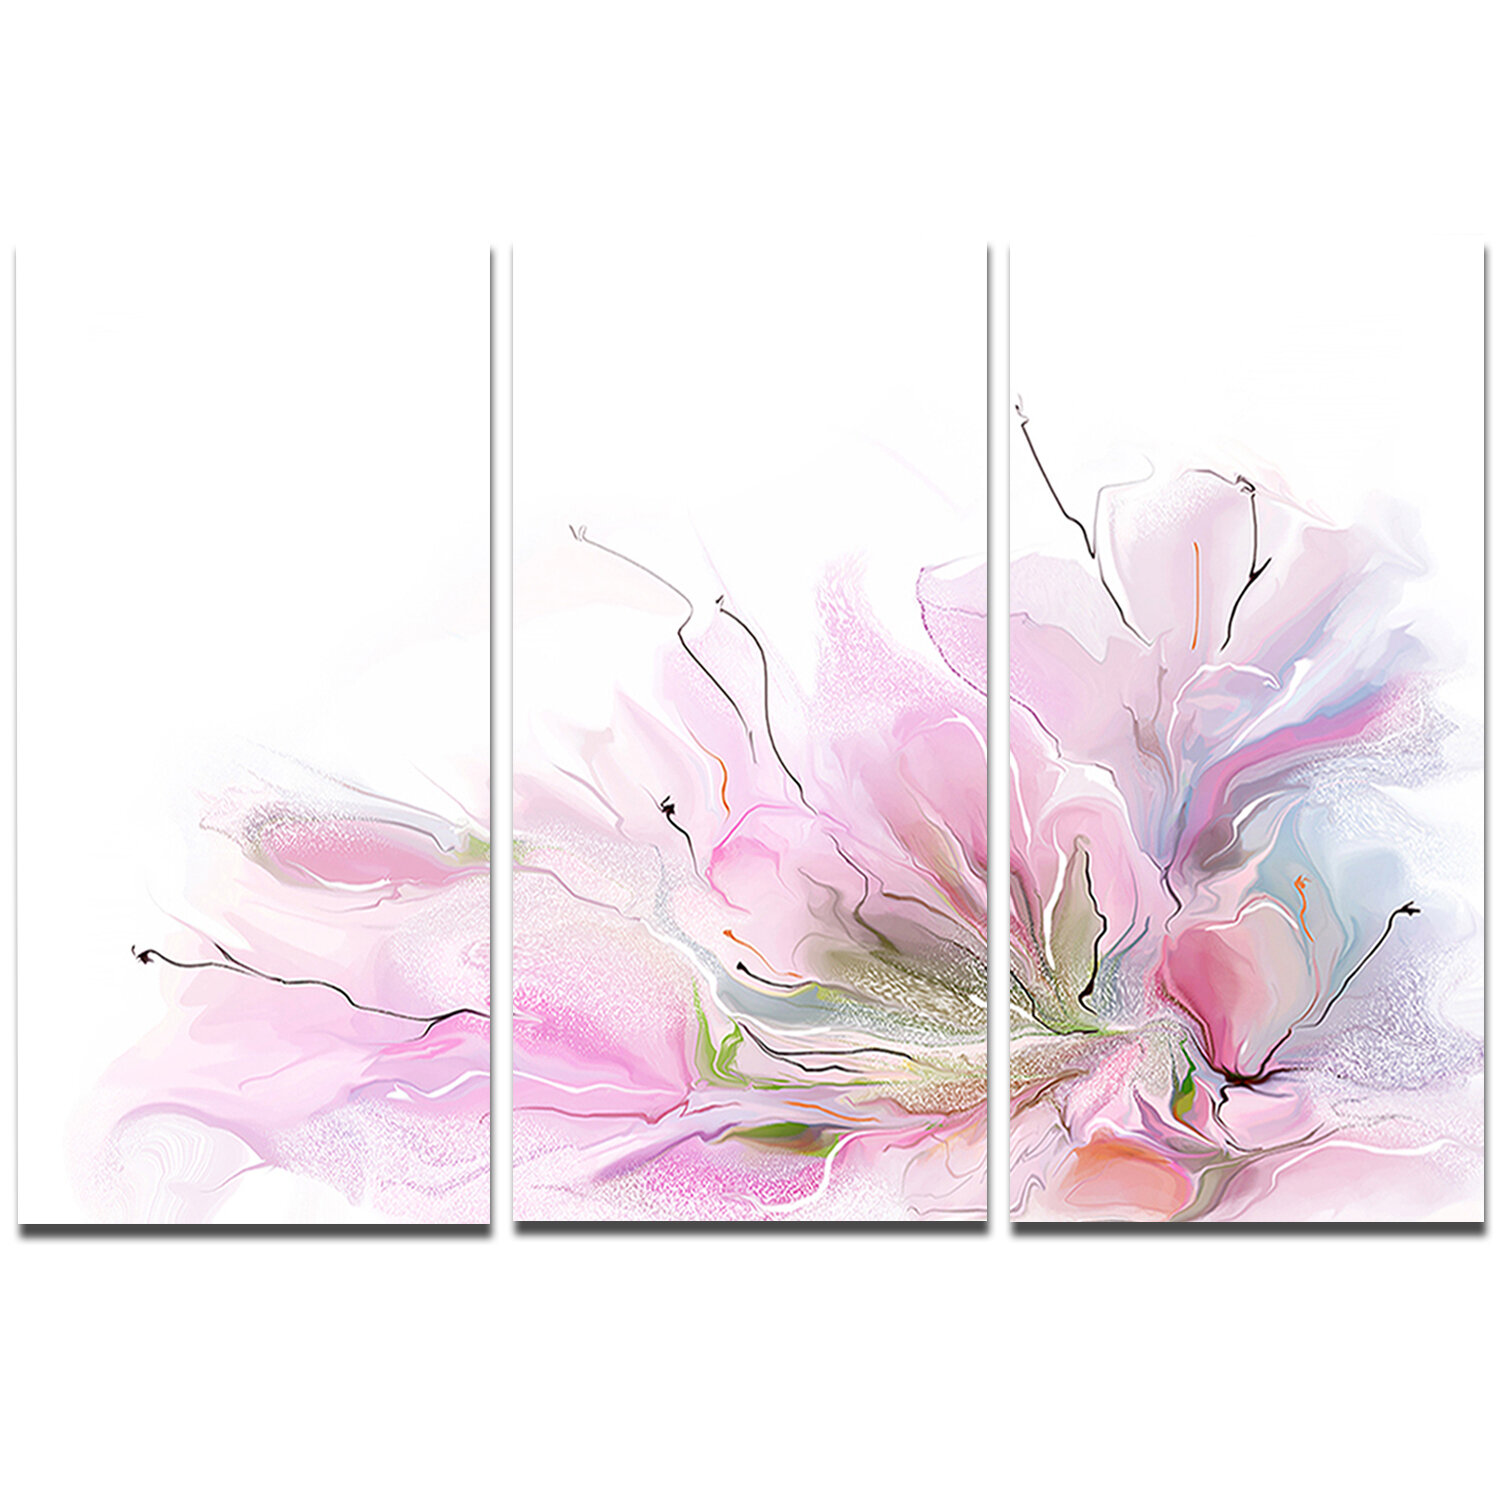 Designart Lovely Pink Flowers 3 Piece Painting Print On Wrapped